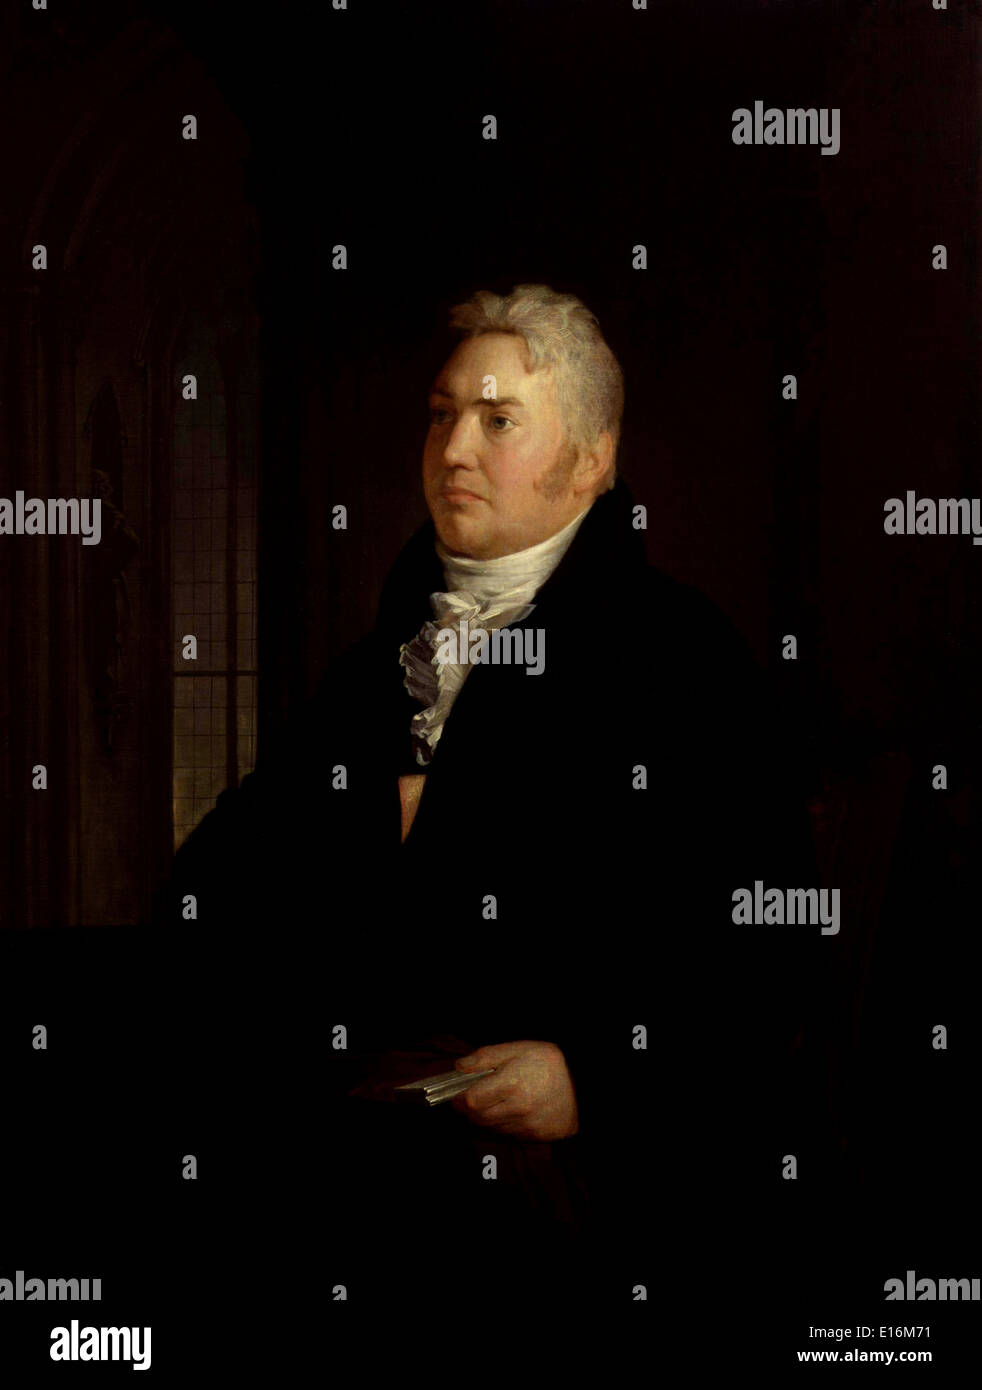 Samuel Taylor Coleridge by Washington Allston, 1814 - Stock Image